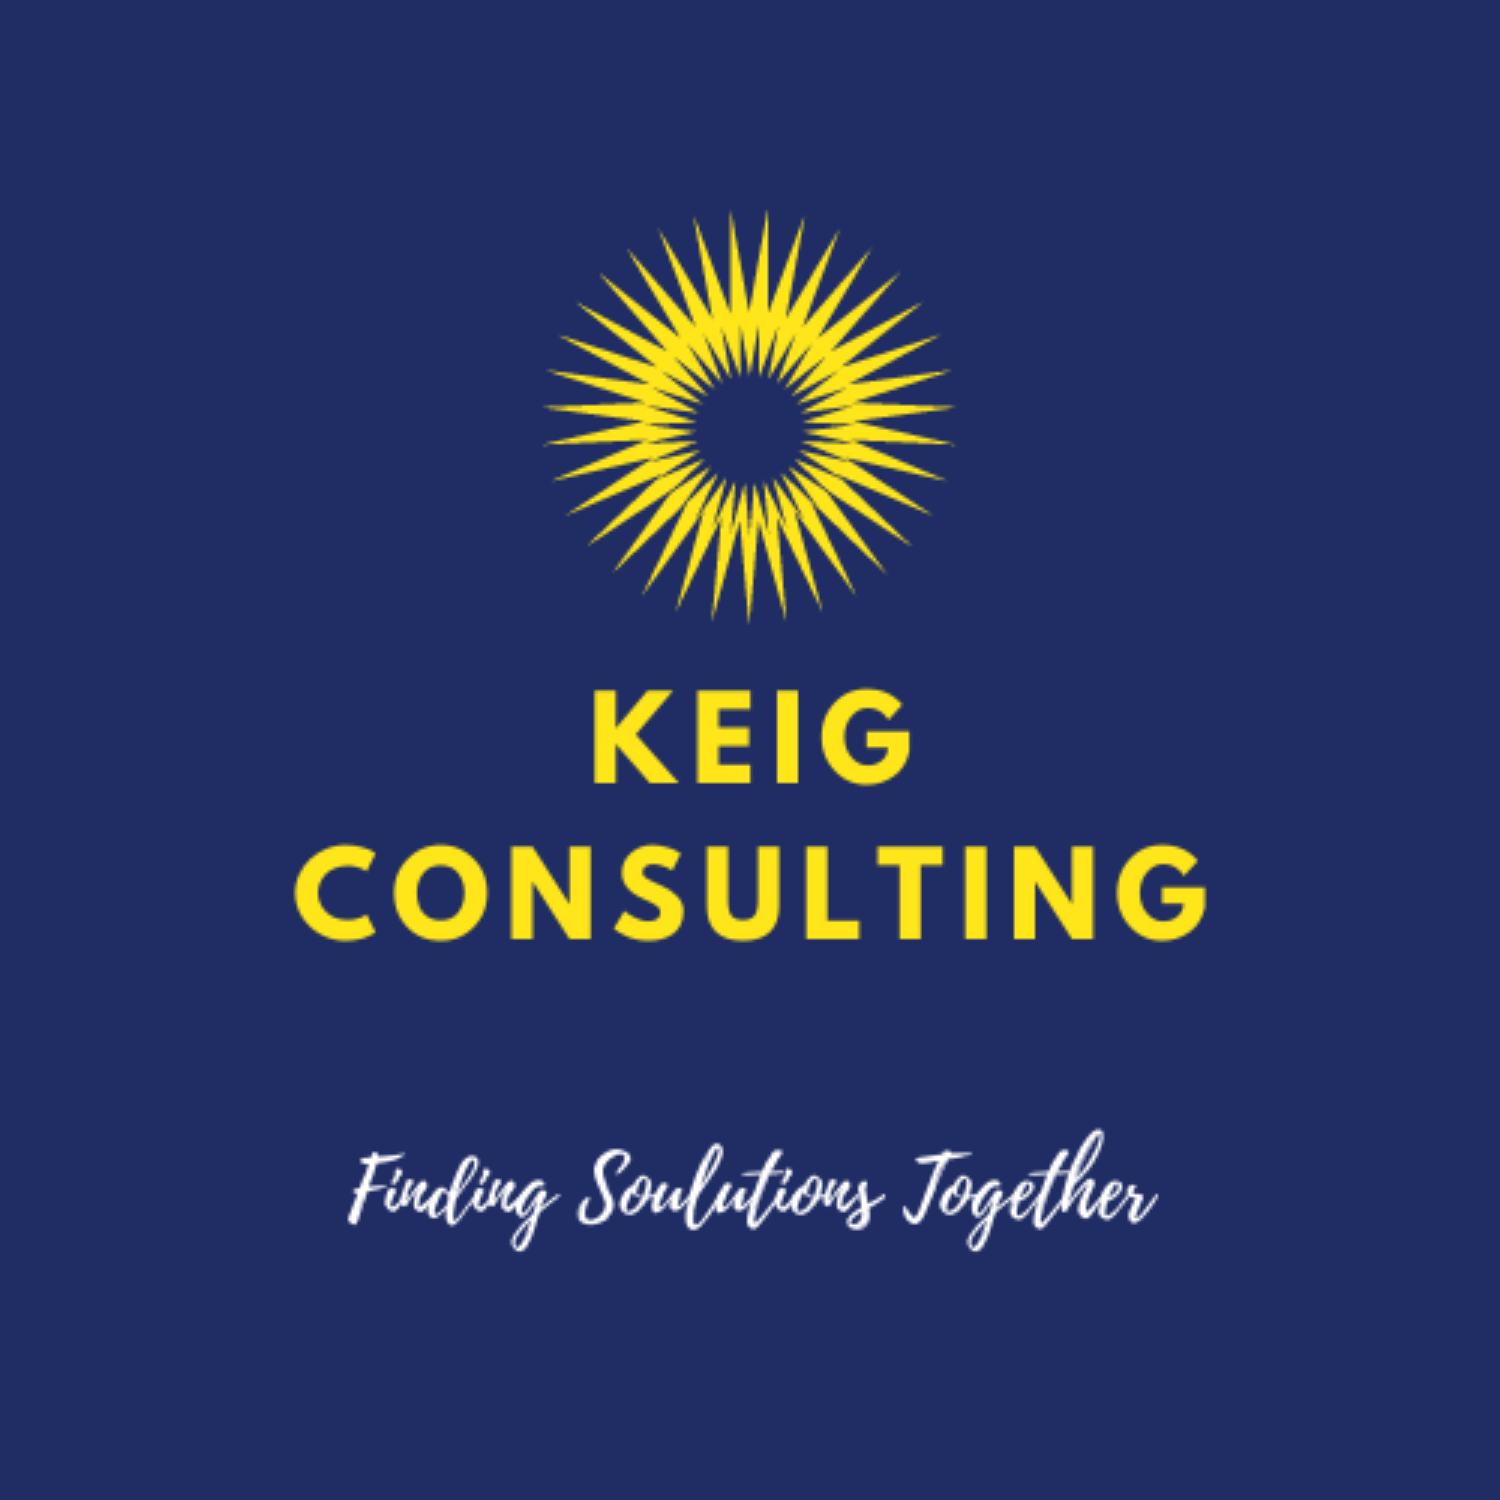 Keig Consulting